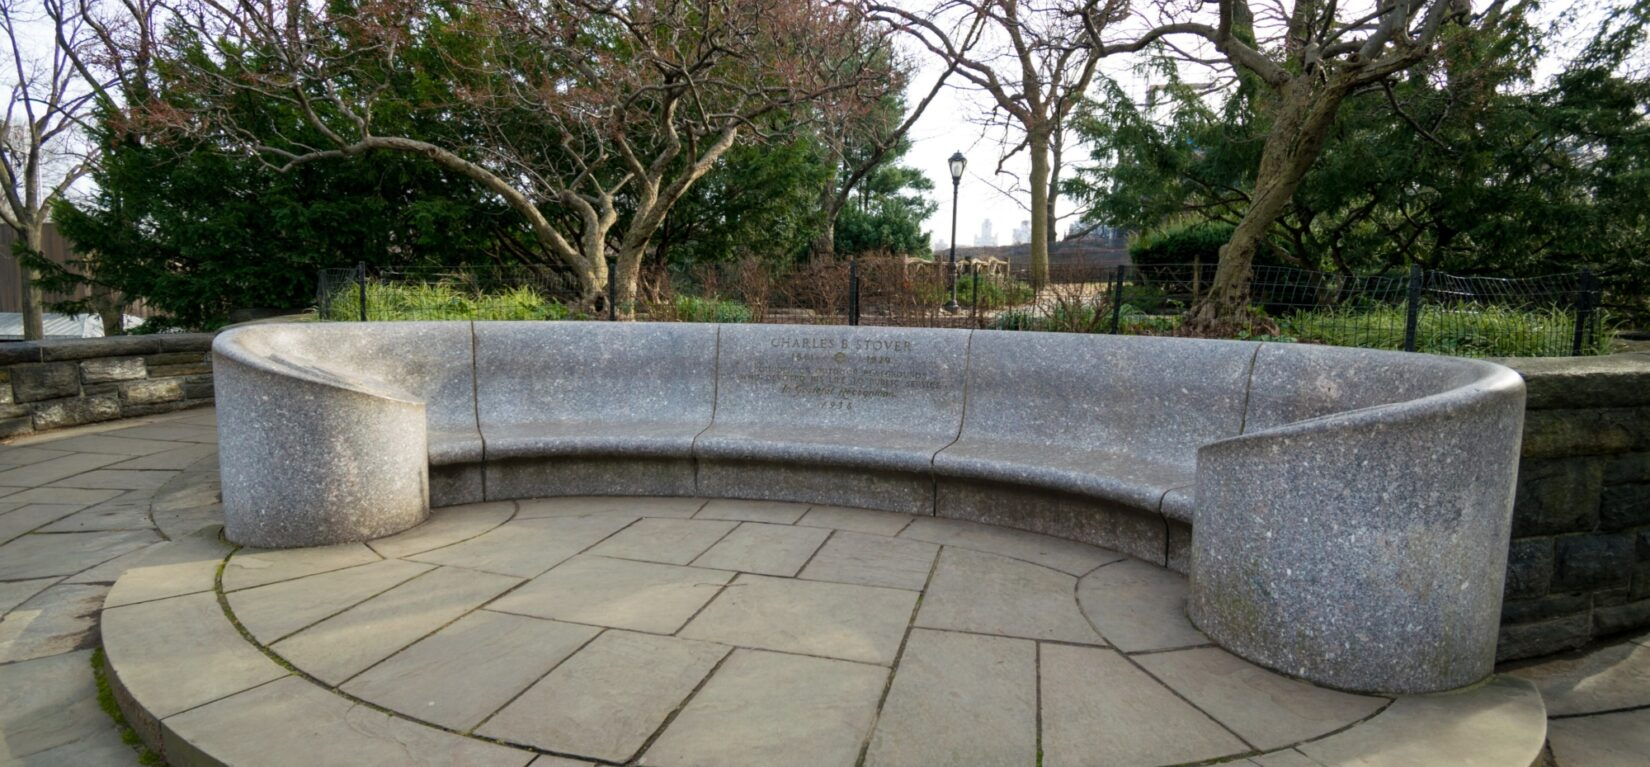 The granite bench is long and gently curved.